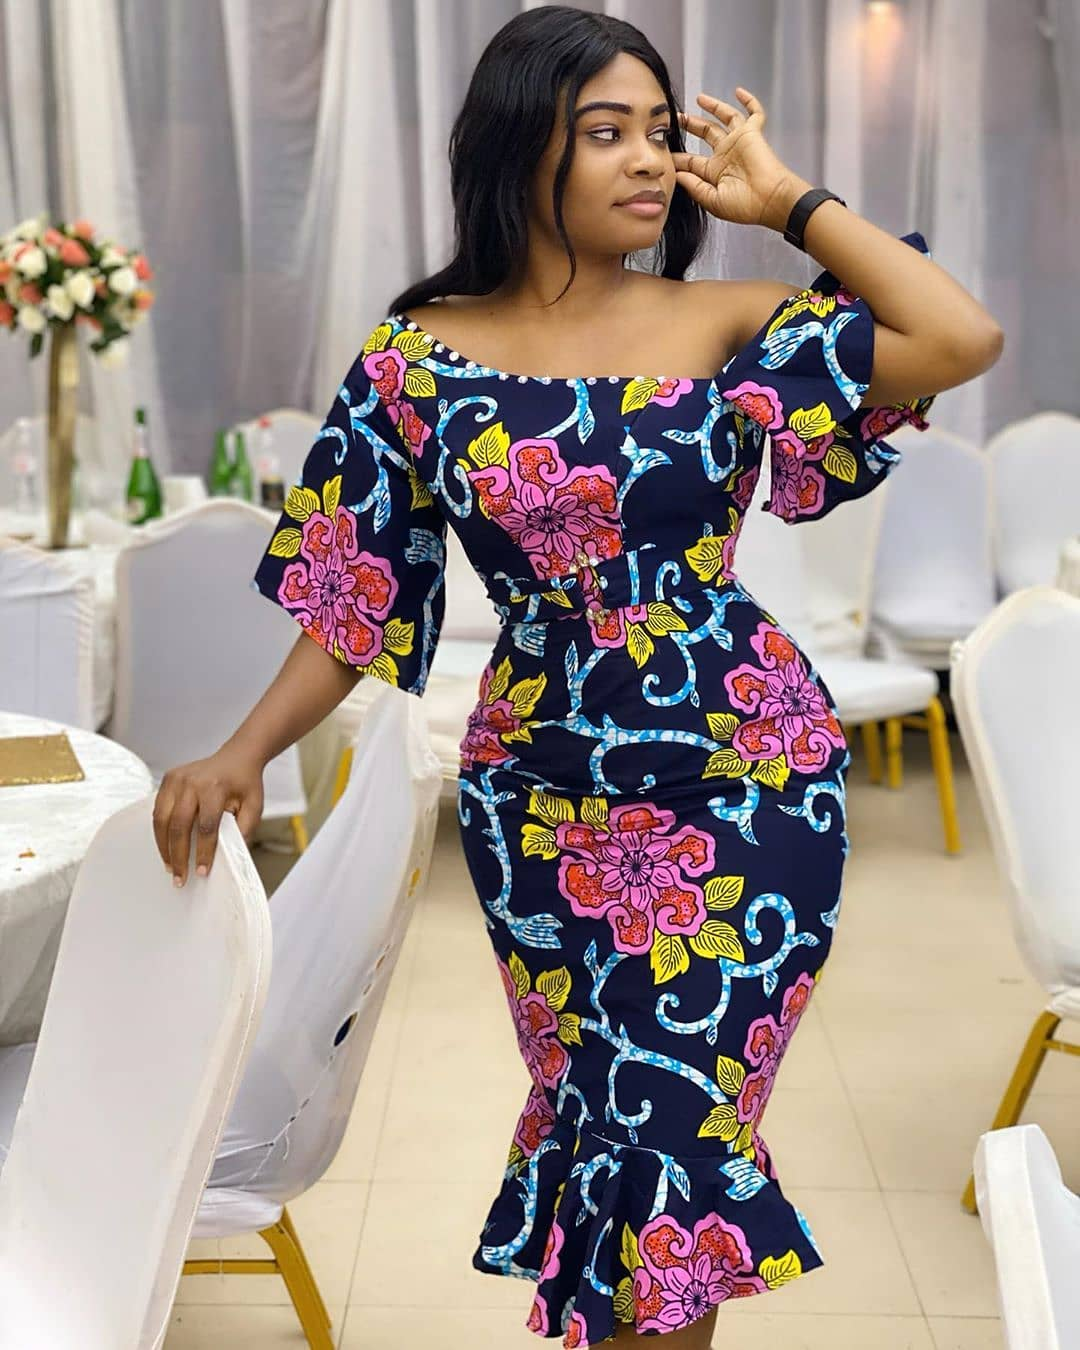 African Dresses And Styles 2020: Best African Dresses For ...